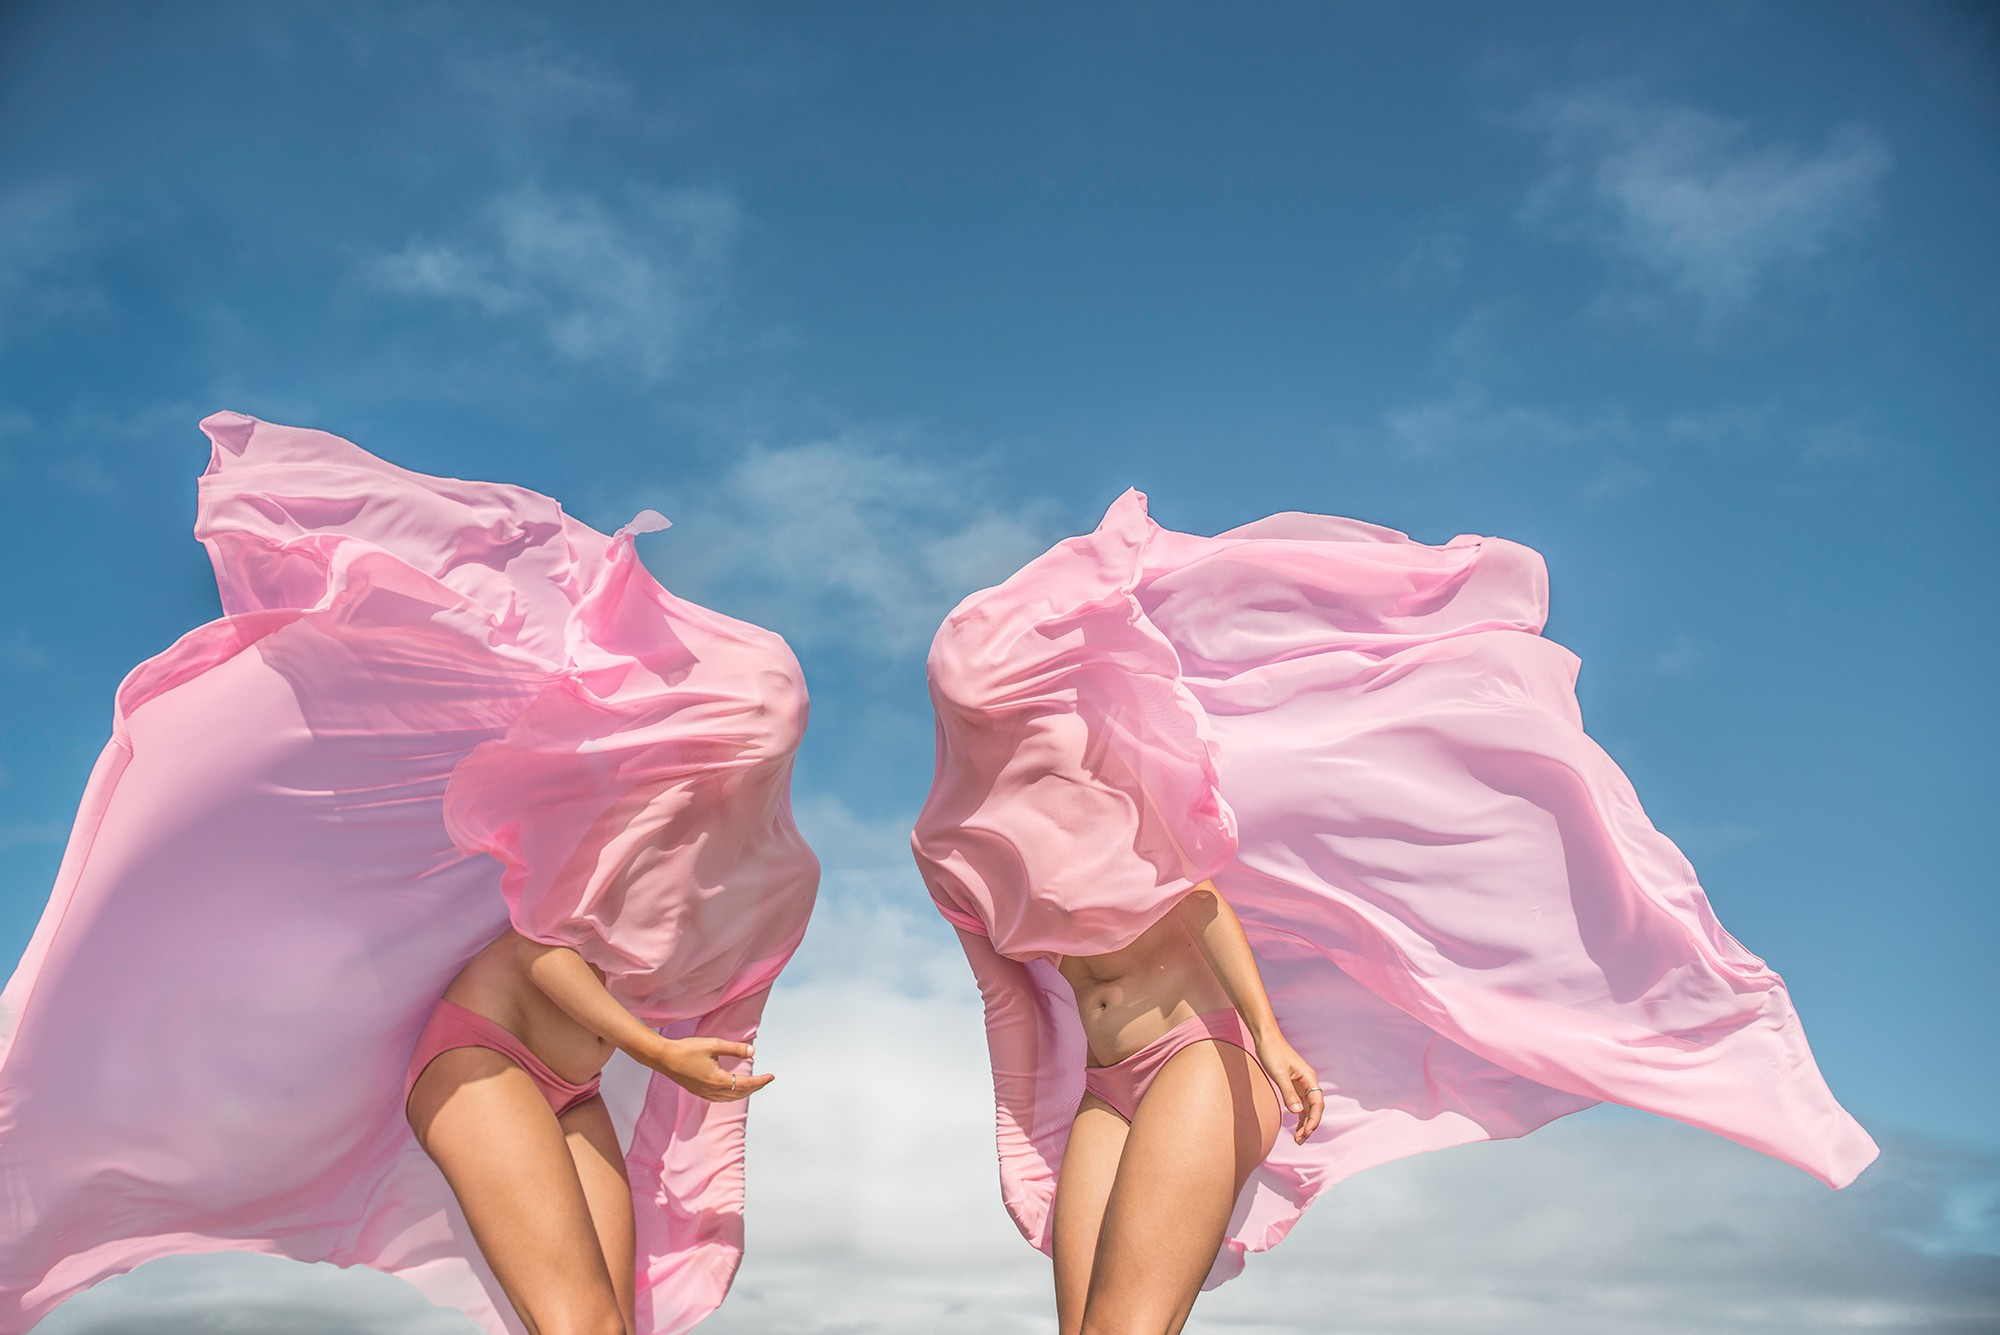 Wind Form Prue Stent Courtesy of TS Publicity